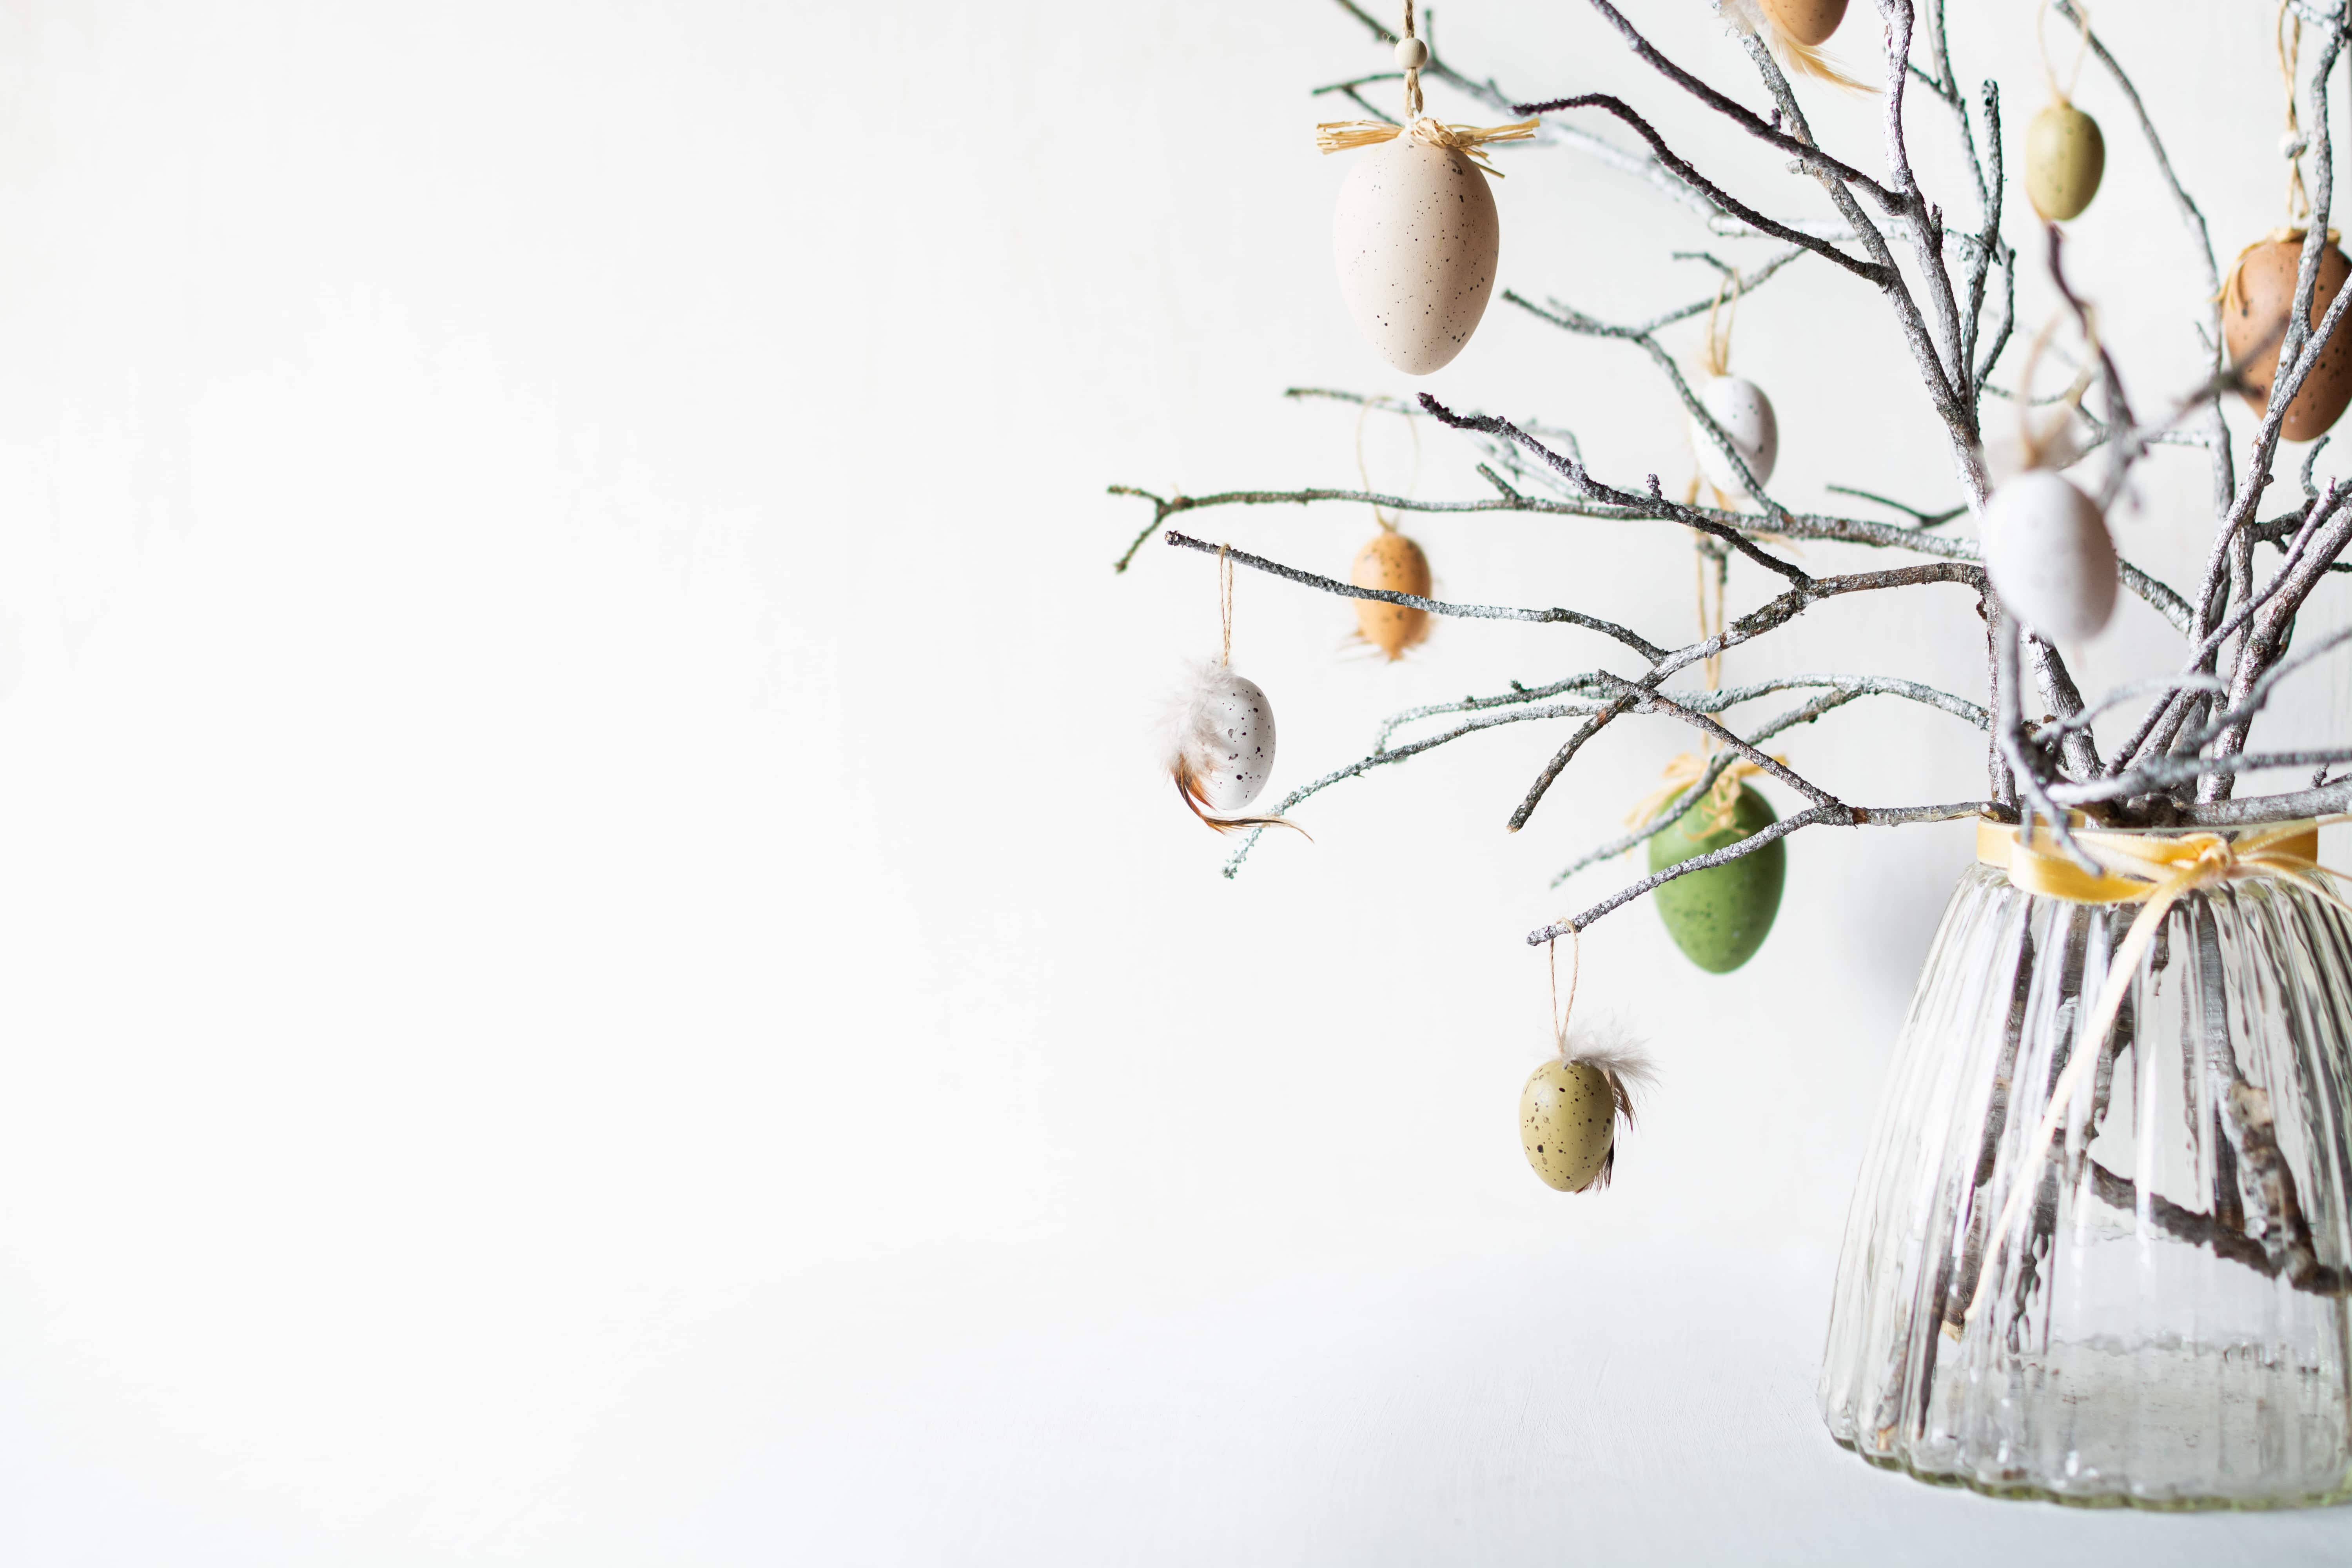 Still life with tree branches decorated with Easter eggs and feathers in a glass vase